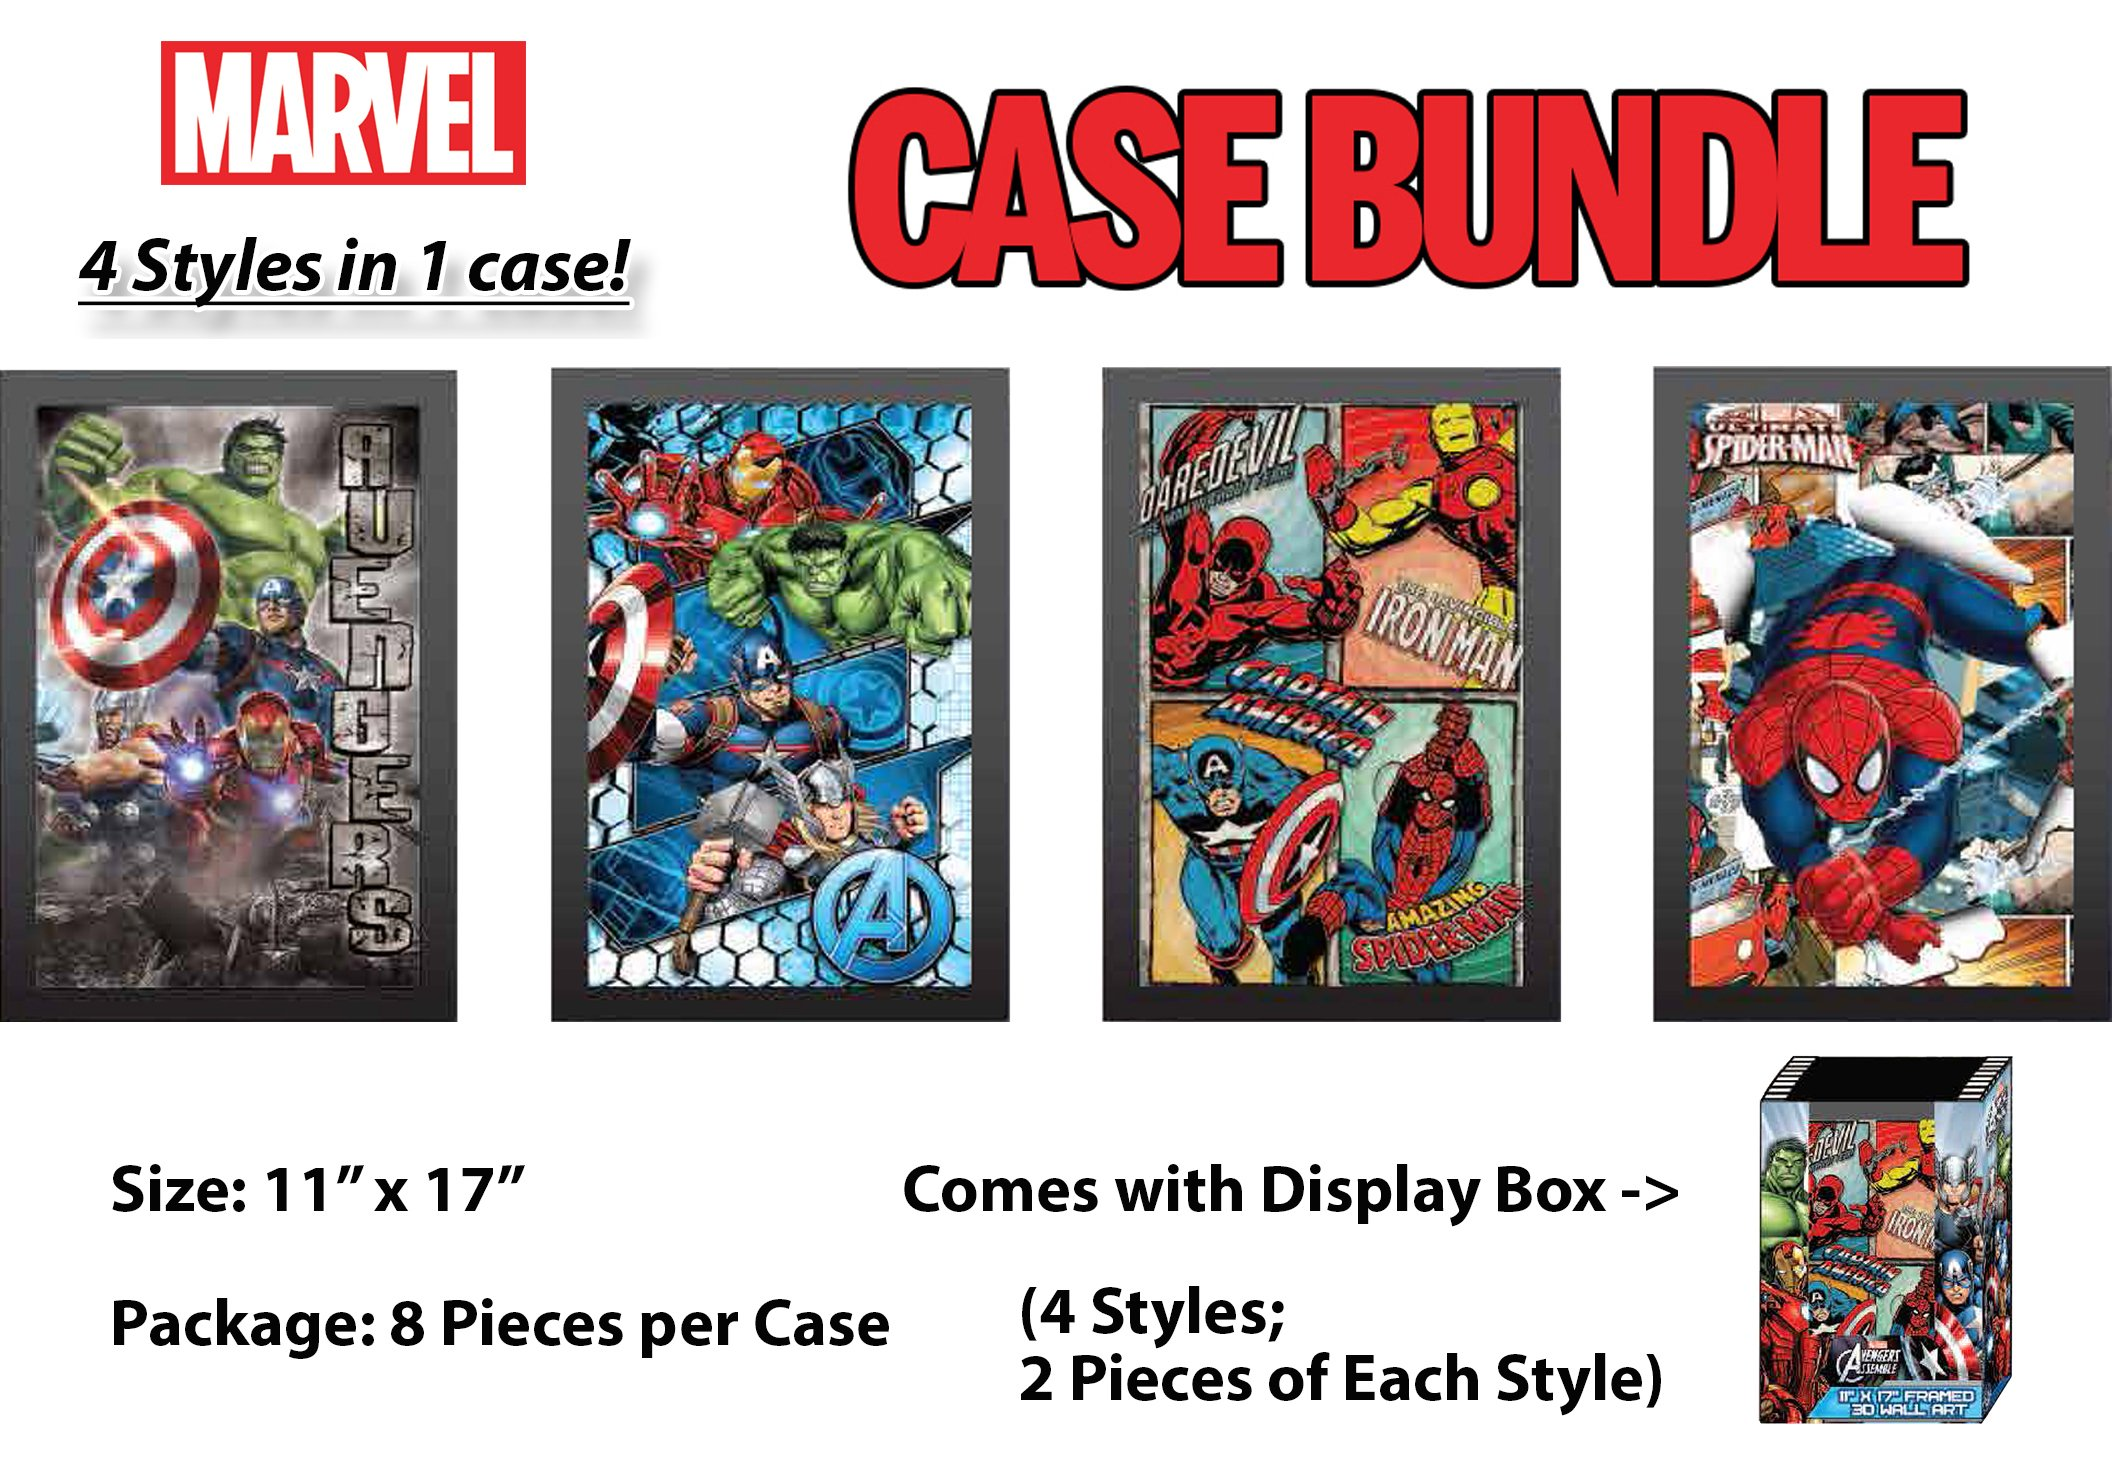 Marvel's Avengers Heroes 3D Picture 11'' x 17'' : ''Captain America Iron Man Thor Hulk Spider-man'' 3D Lenticular Poster Artwork Wall Decor Animated Image Framed w/ Black Frame (Bundle(8 Pieces/4 Styles))